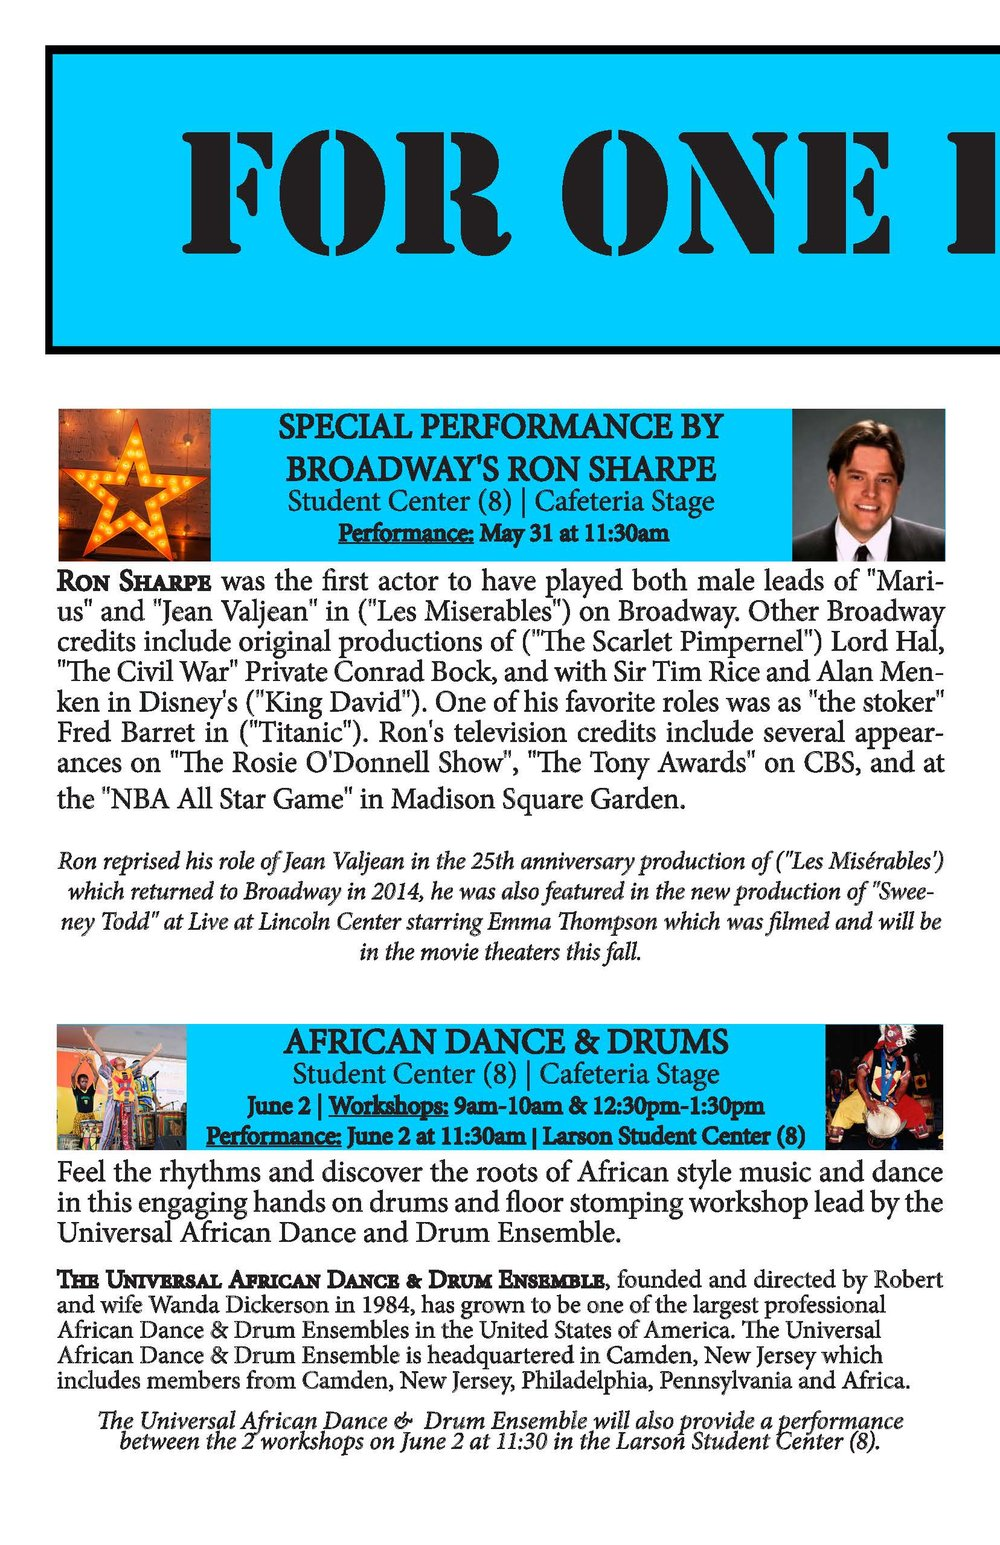 State Festival Program FINAL DRAFT_Page_10.jpg